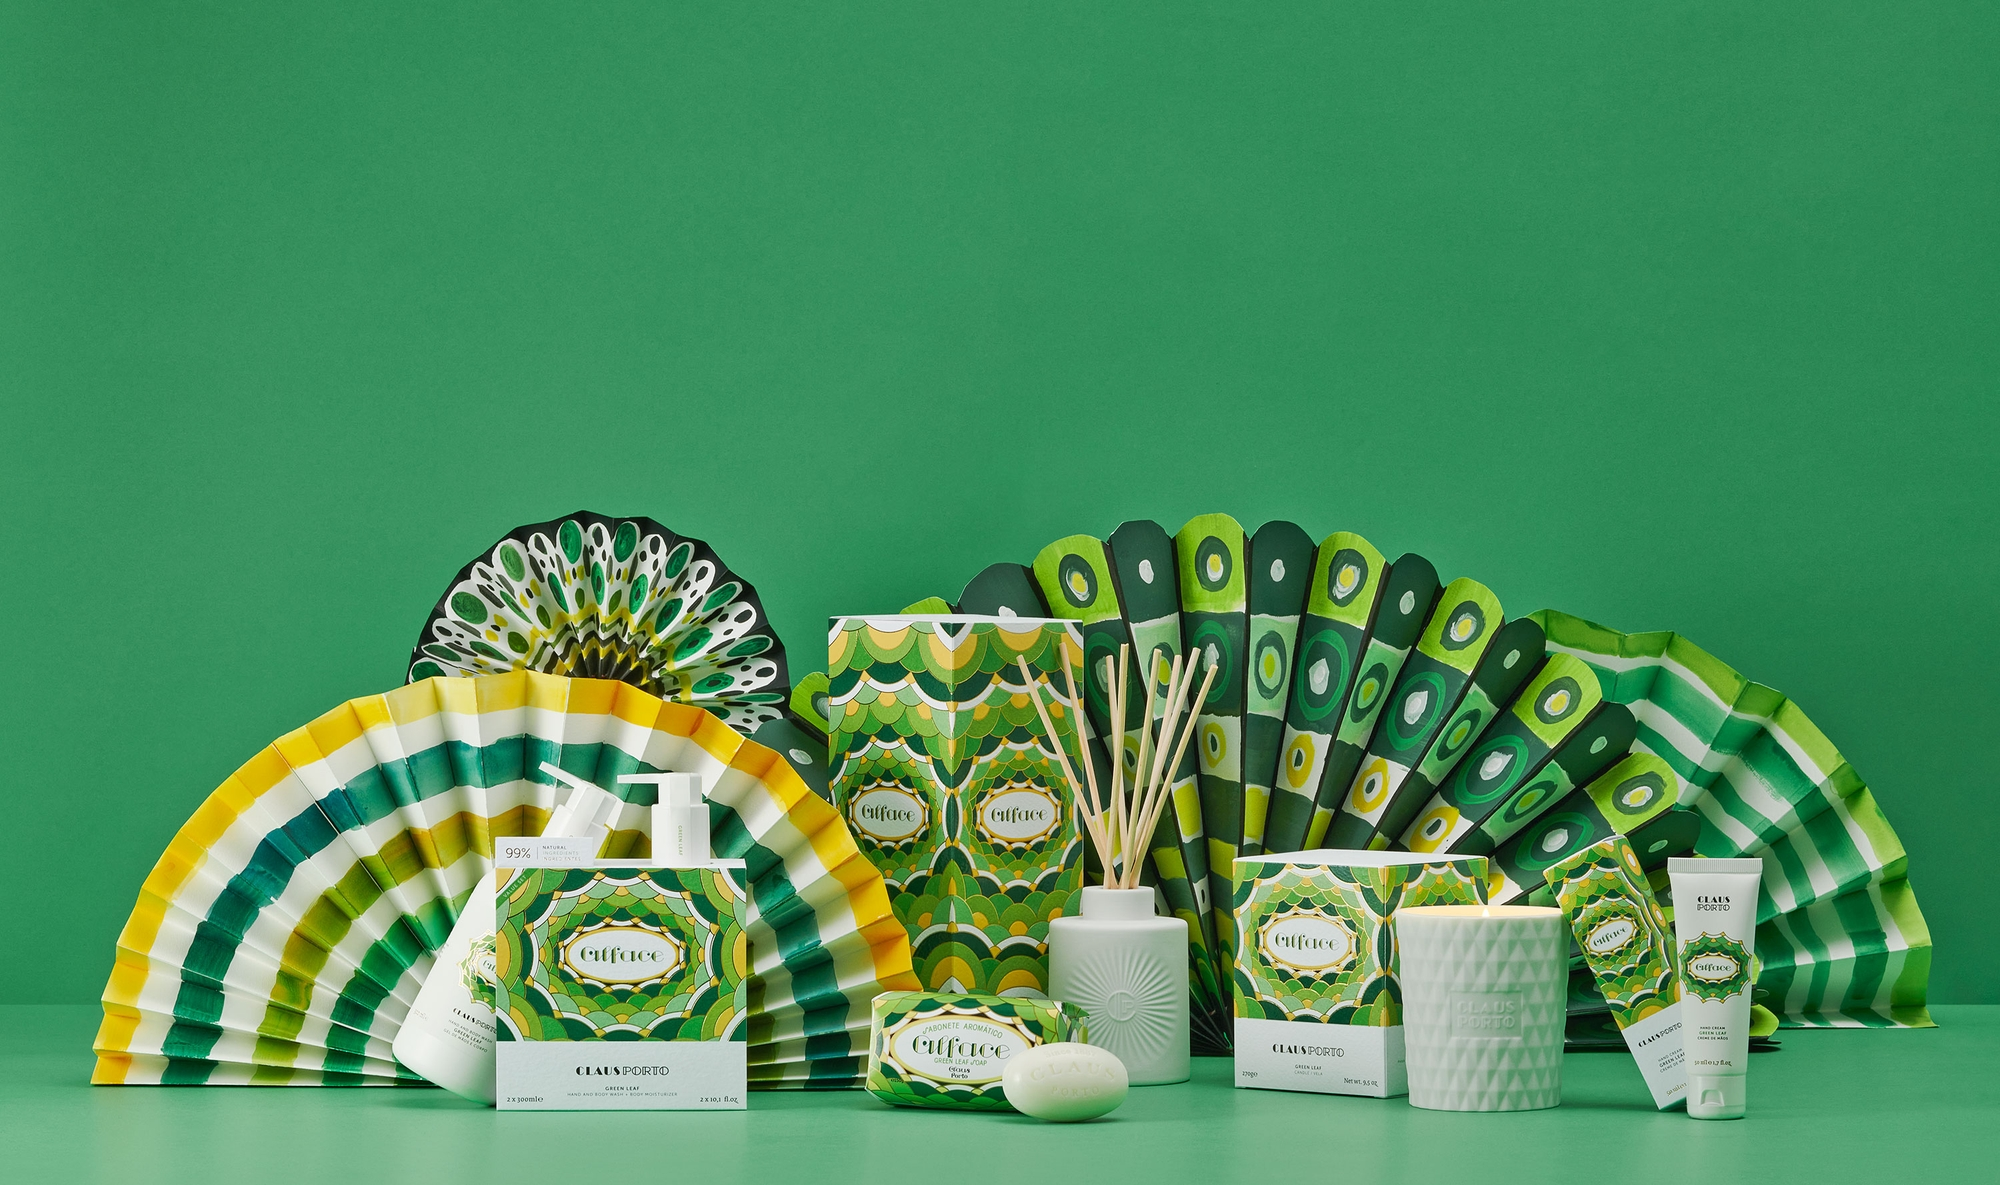 Alface Green Leaf Product Range with Bath & Body and Home Fragrances